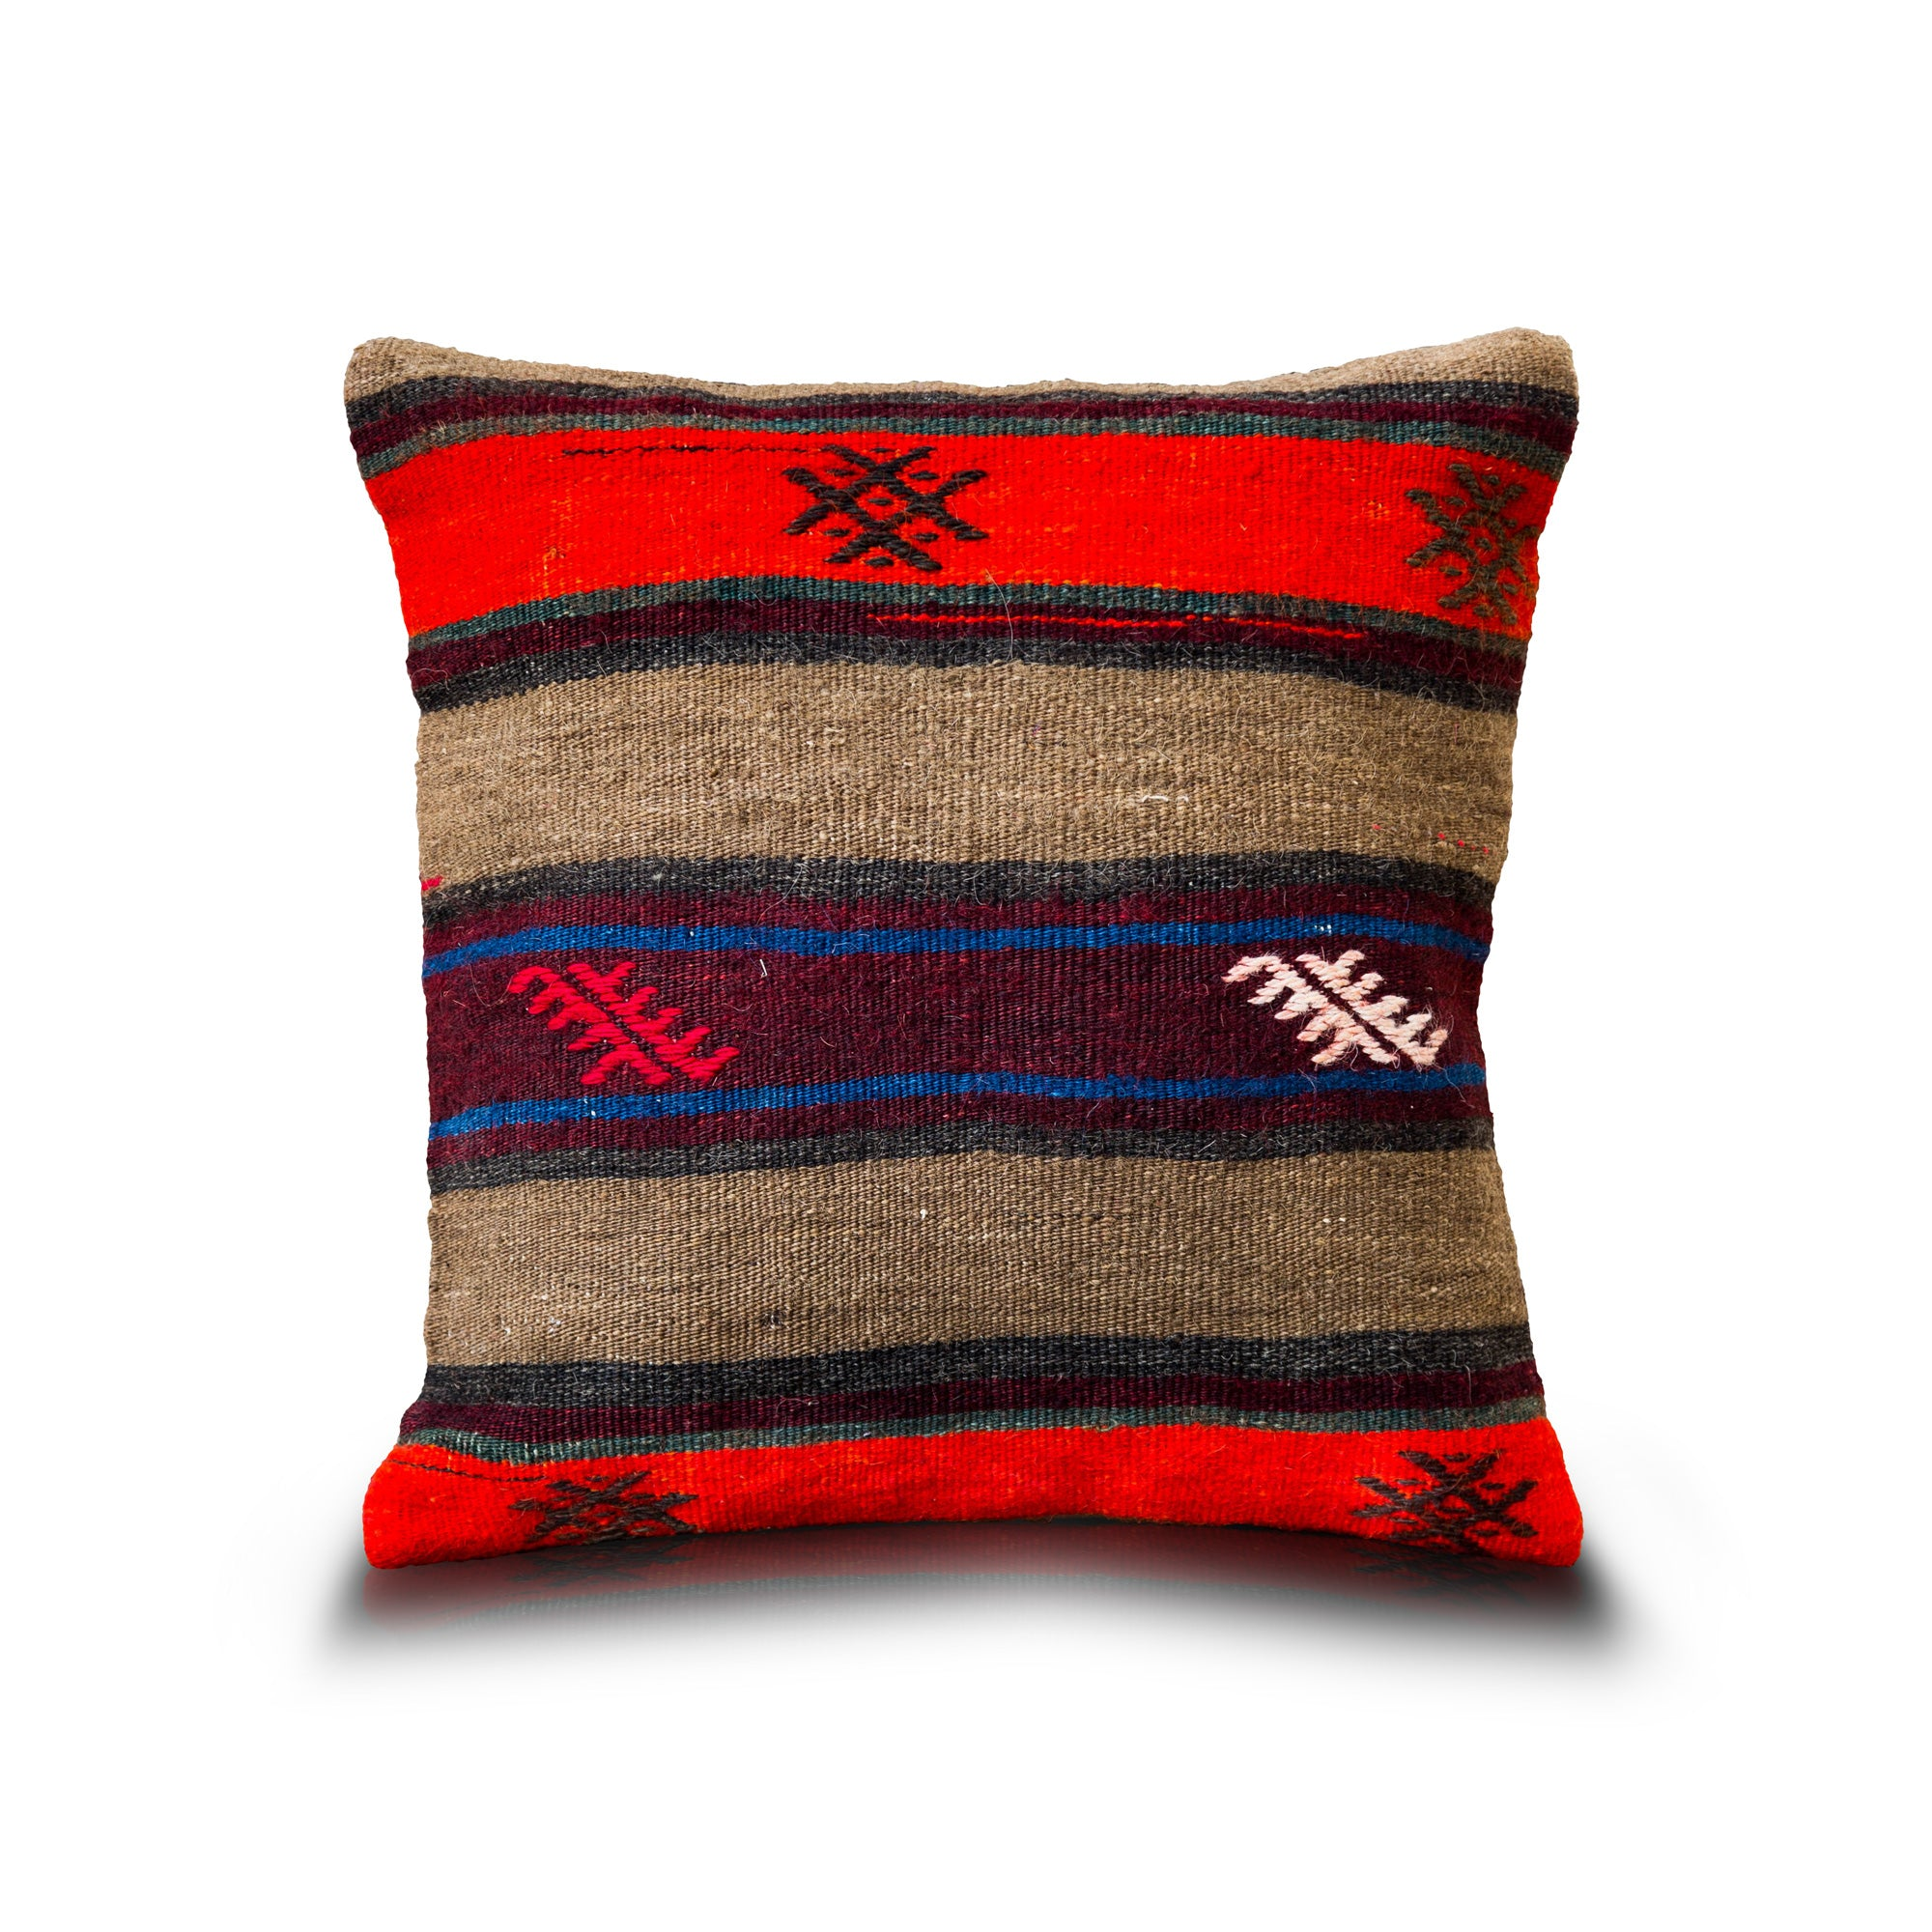 plush pillows p majestic outdoor throw htm home indoor red pillow